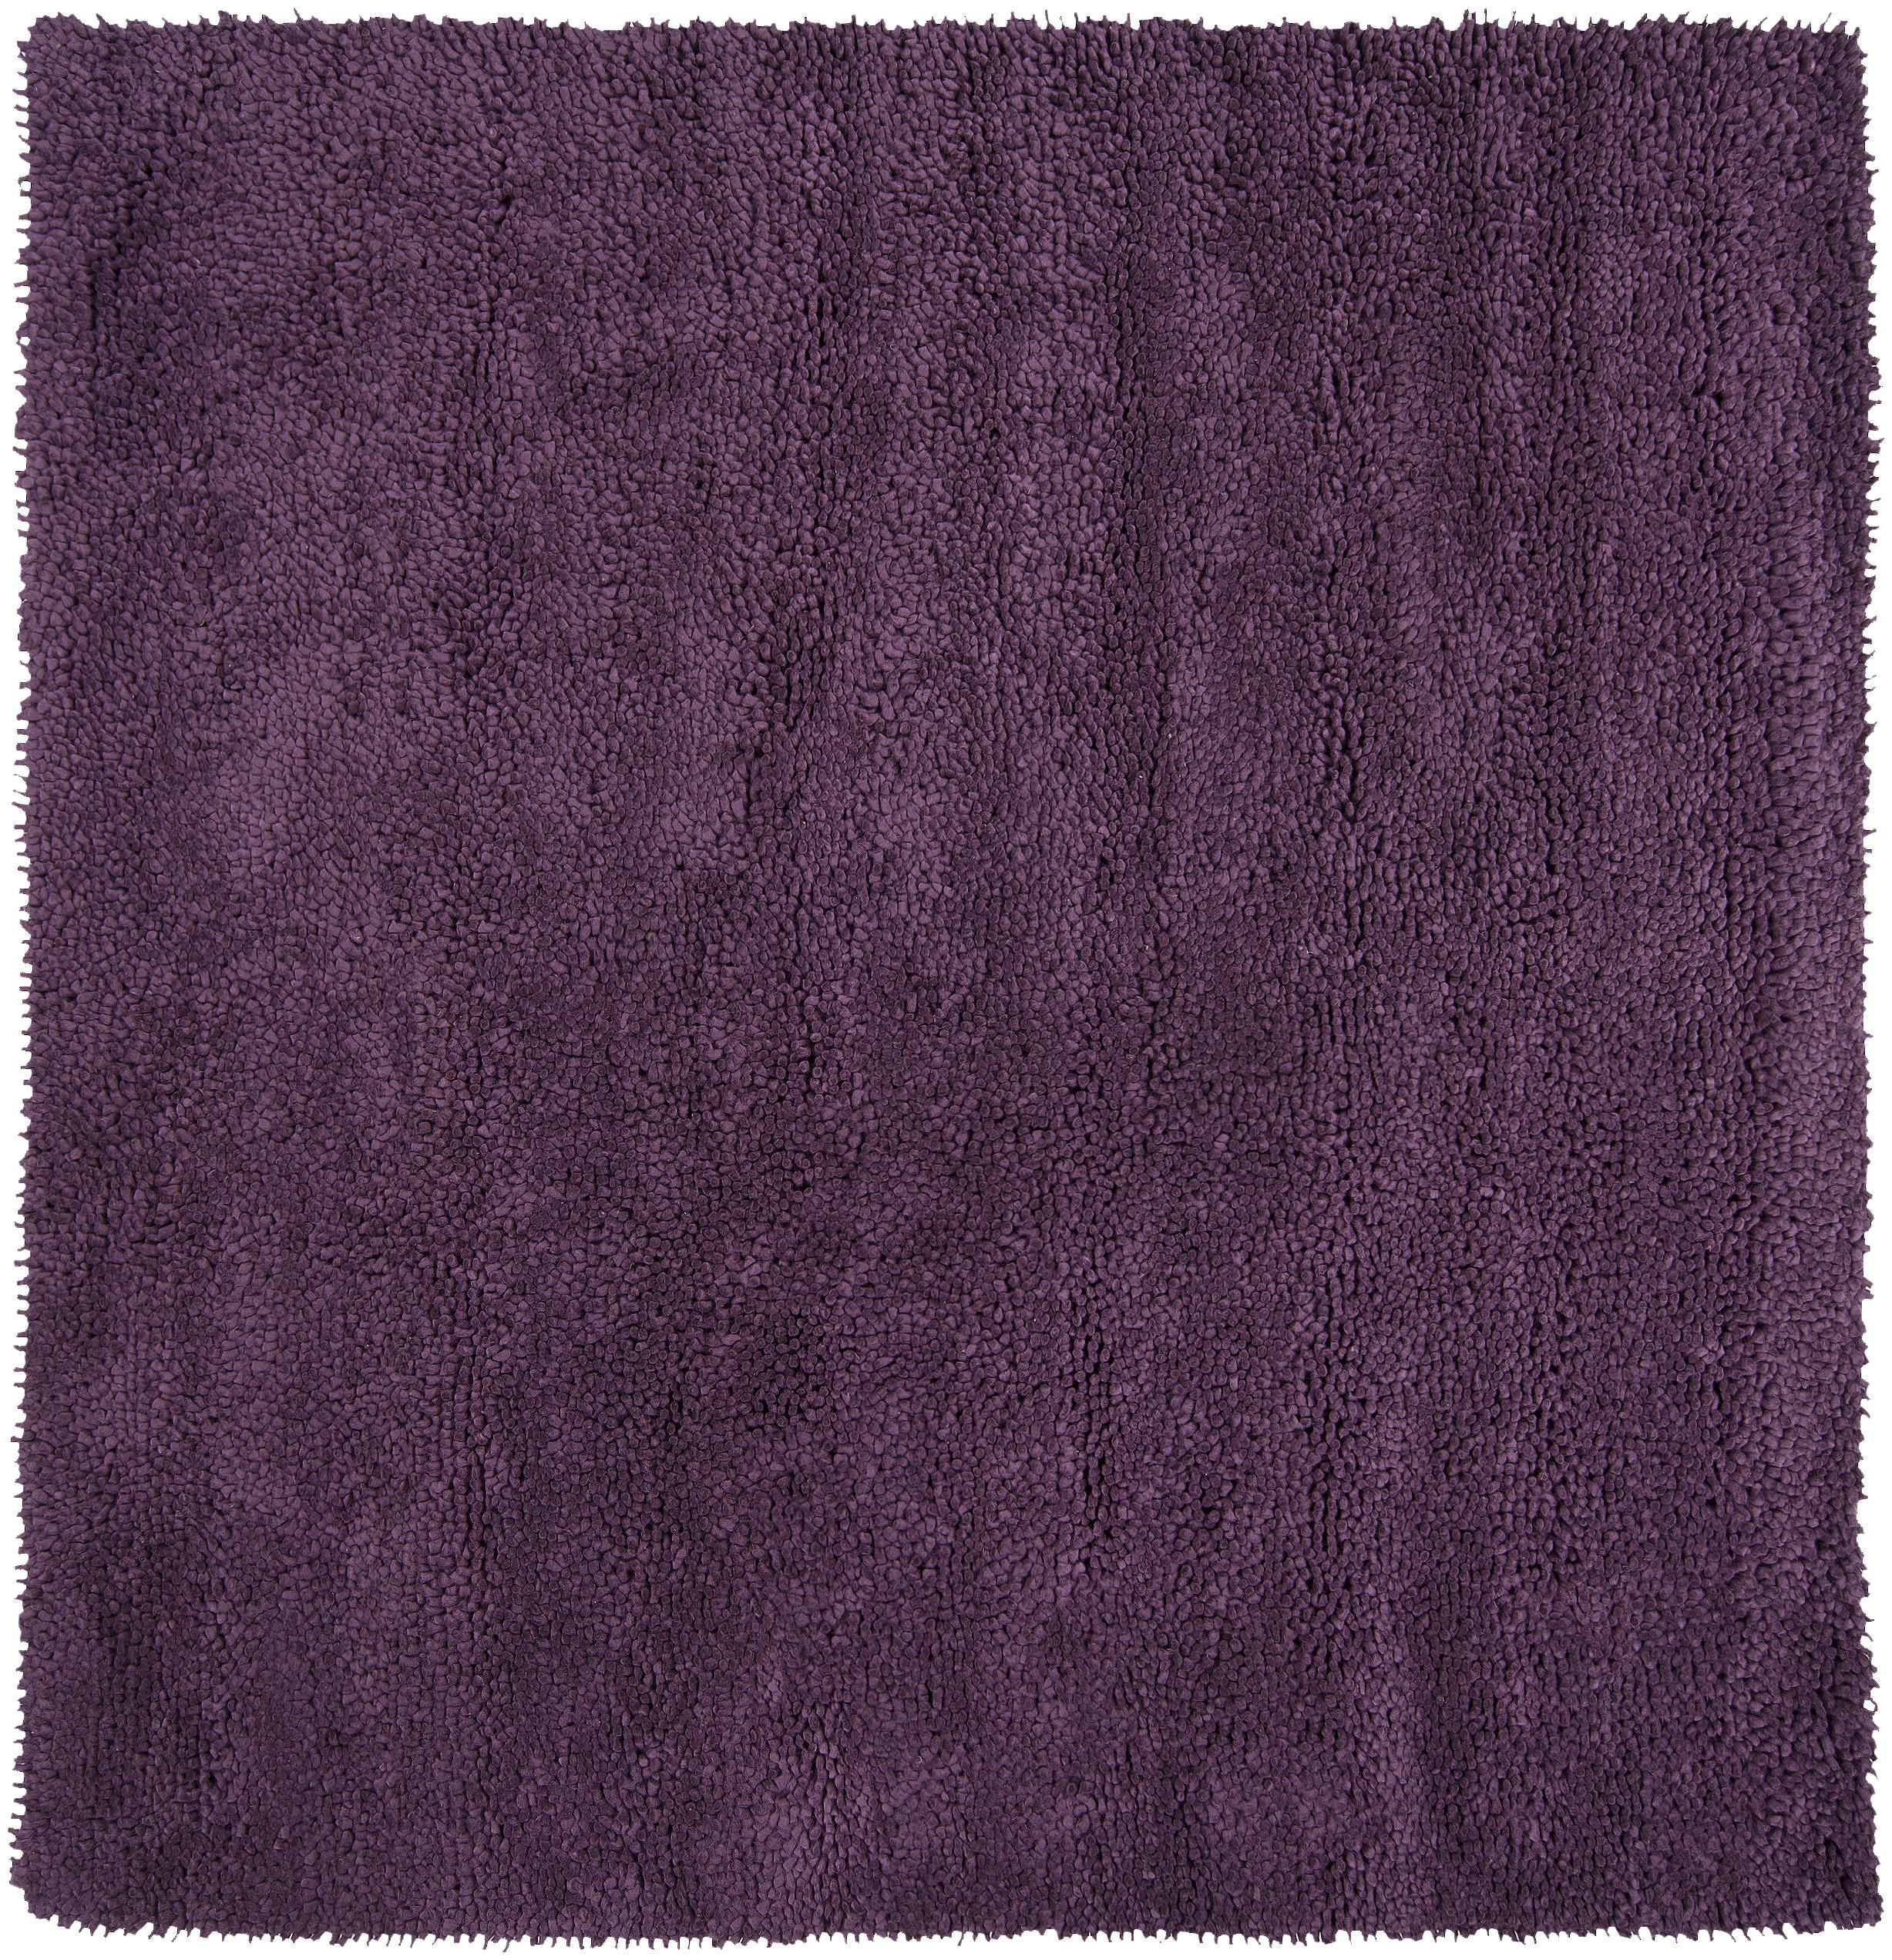 Surya Rugs Aros 8' Square - Item Number: AROS15-8SQ